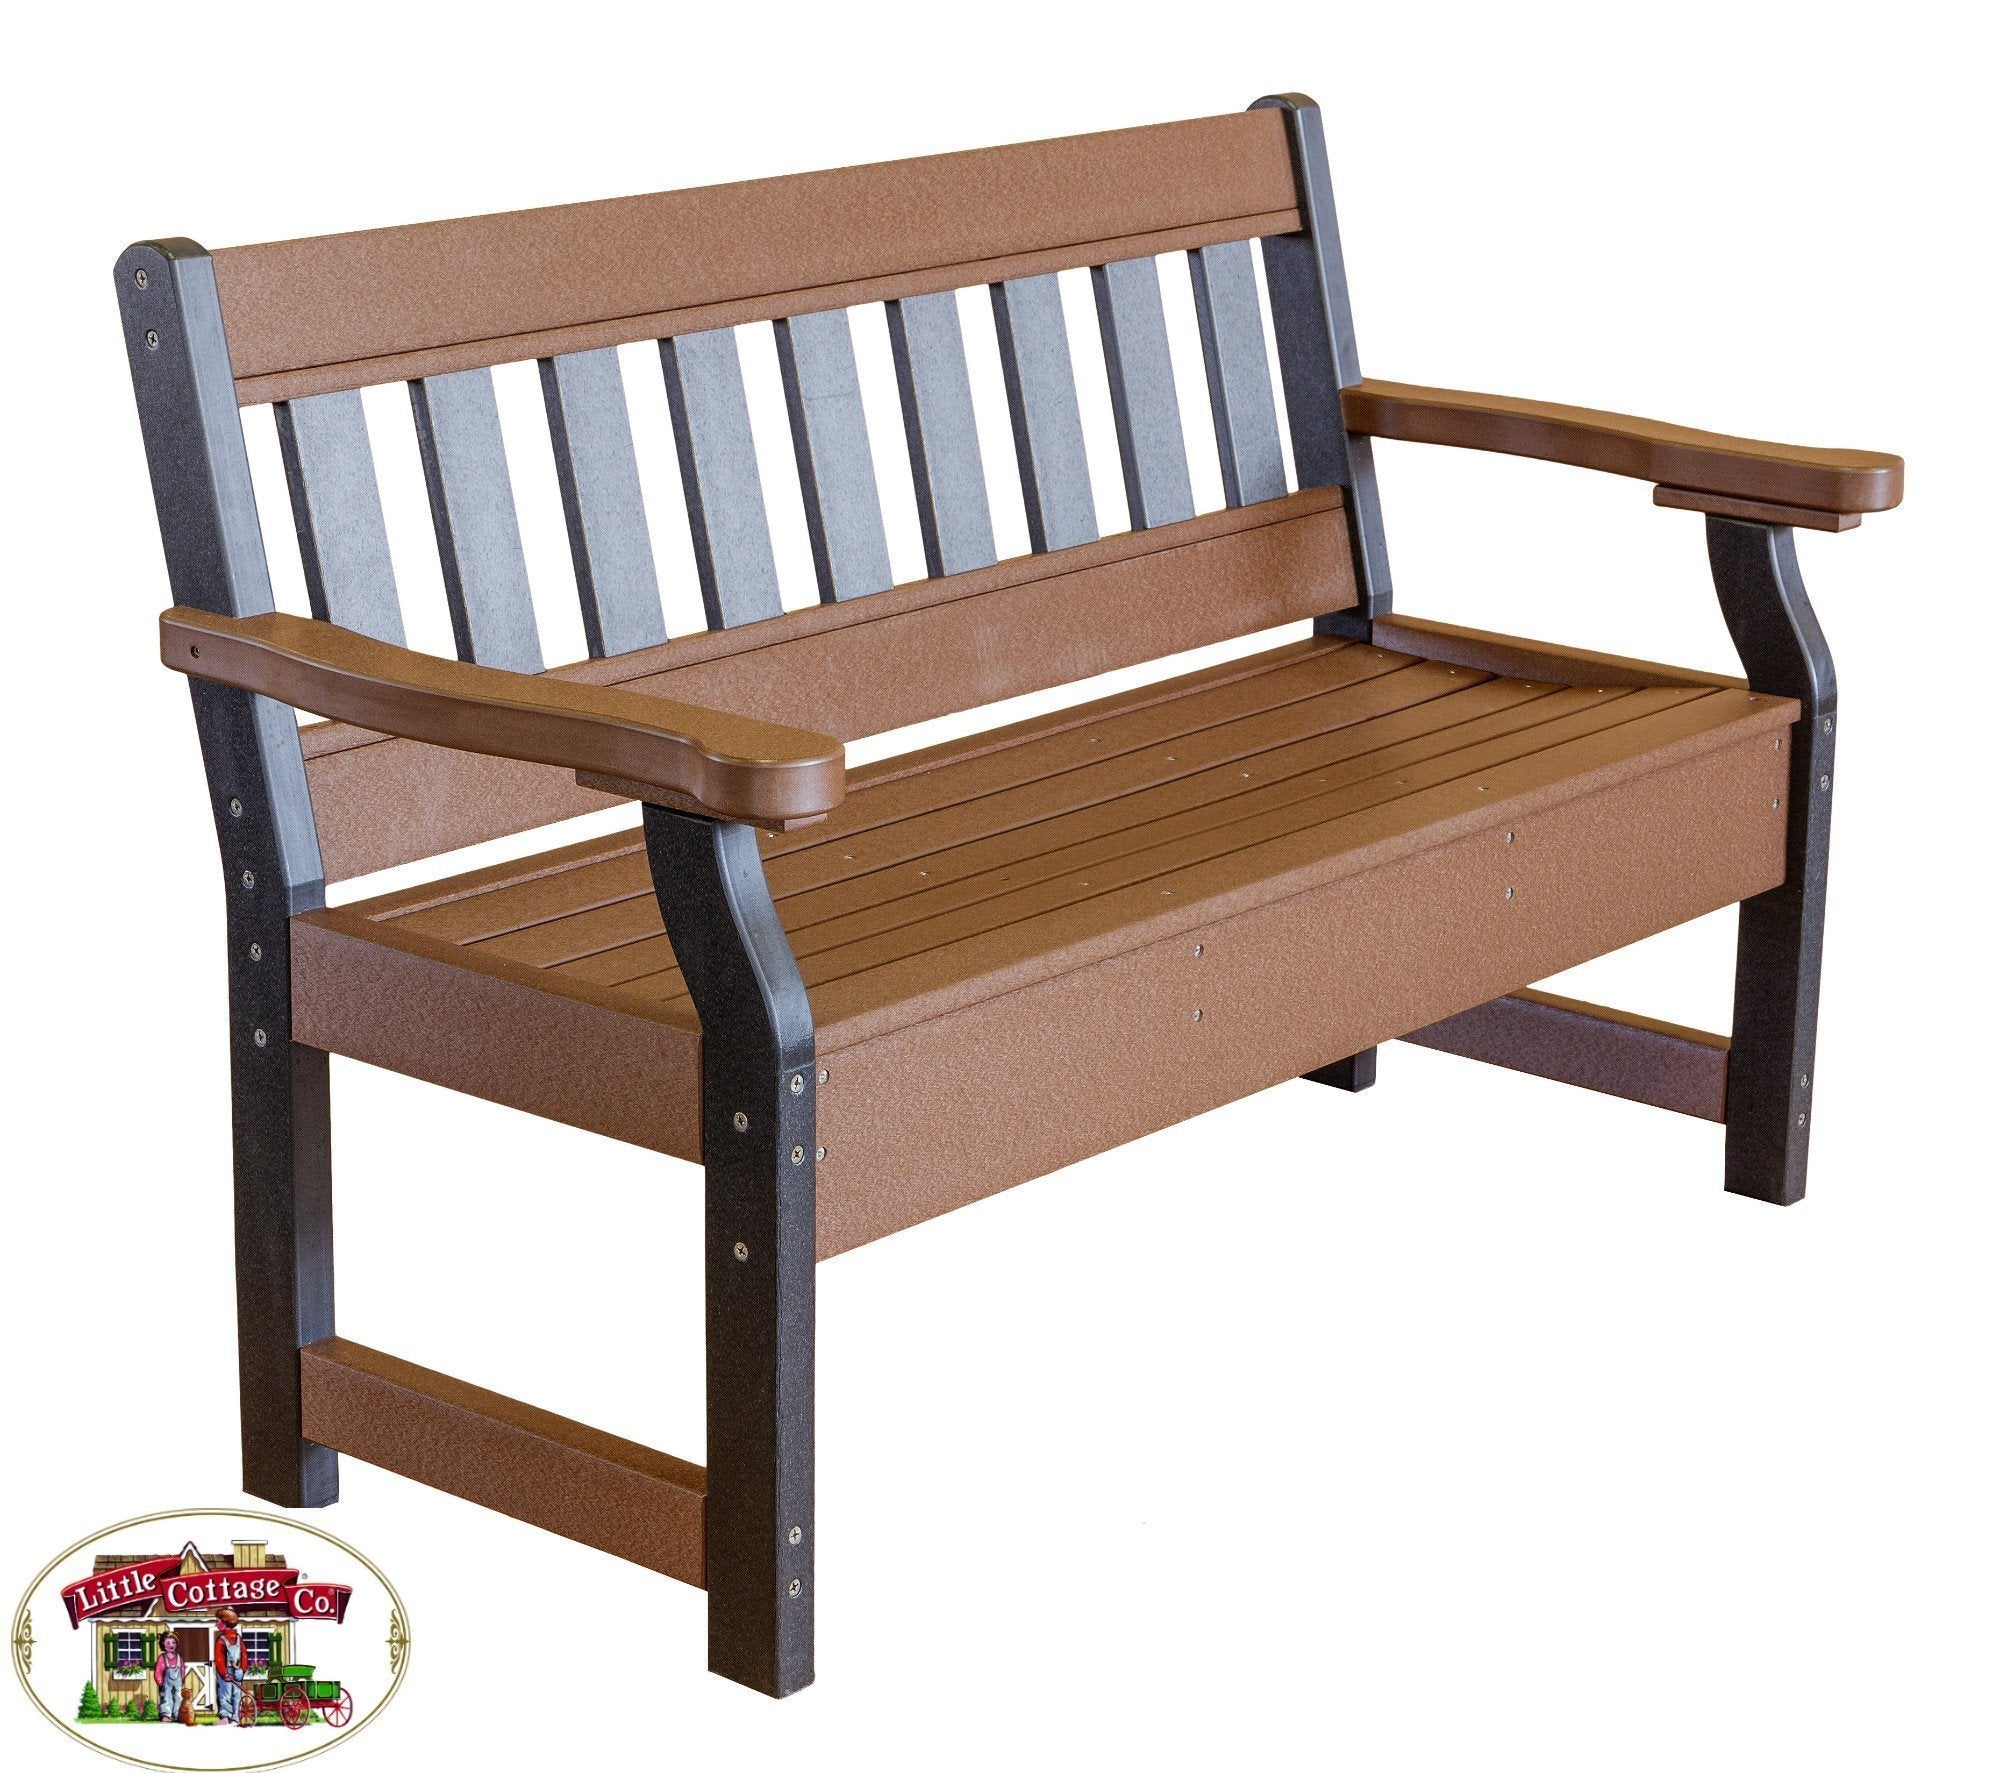 Little Cottage Co. Heritage 4ft. Recycled Plastic Garden Bench Garden Benches Black